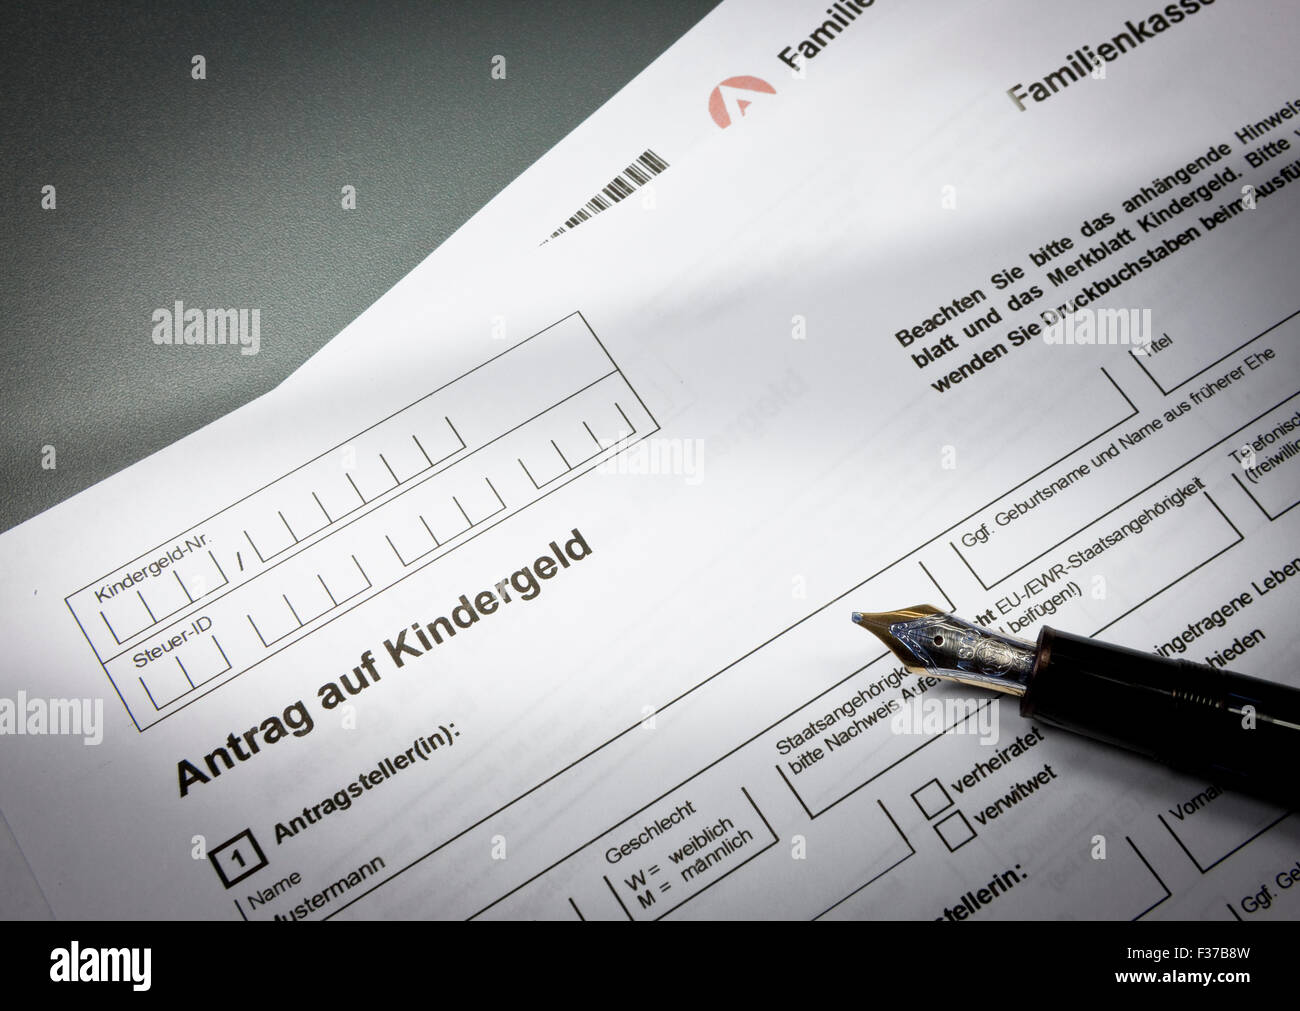 German application form for child support, Germany Stock Photo